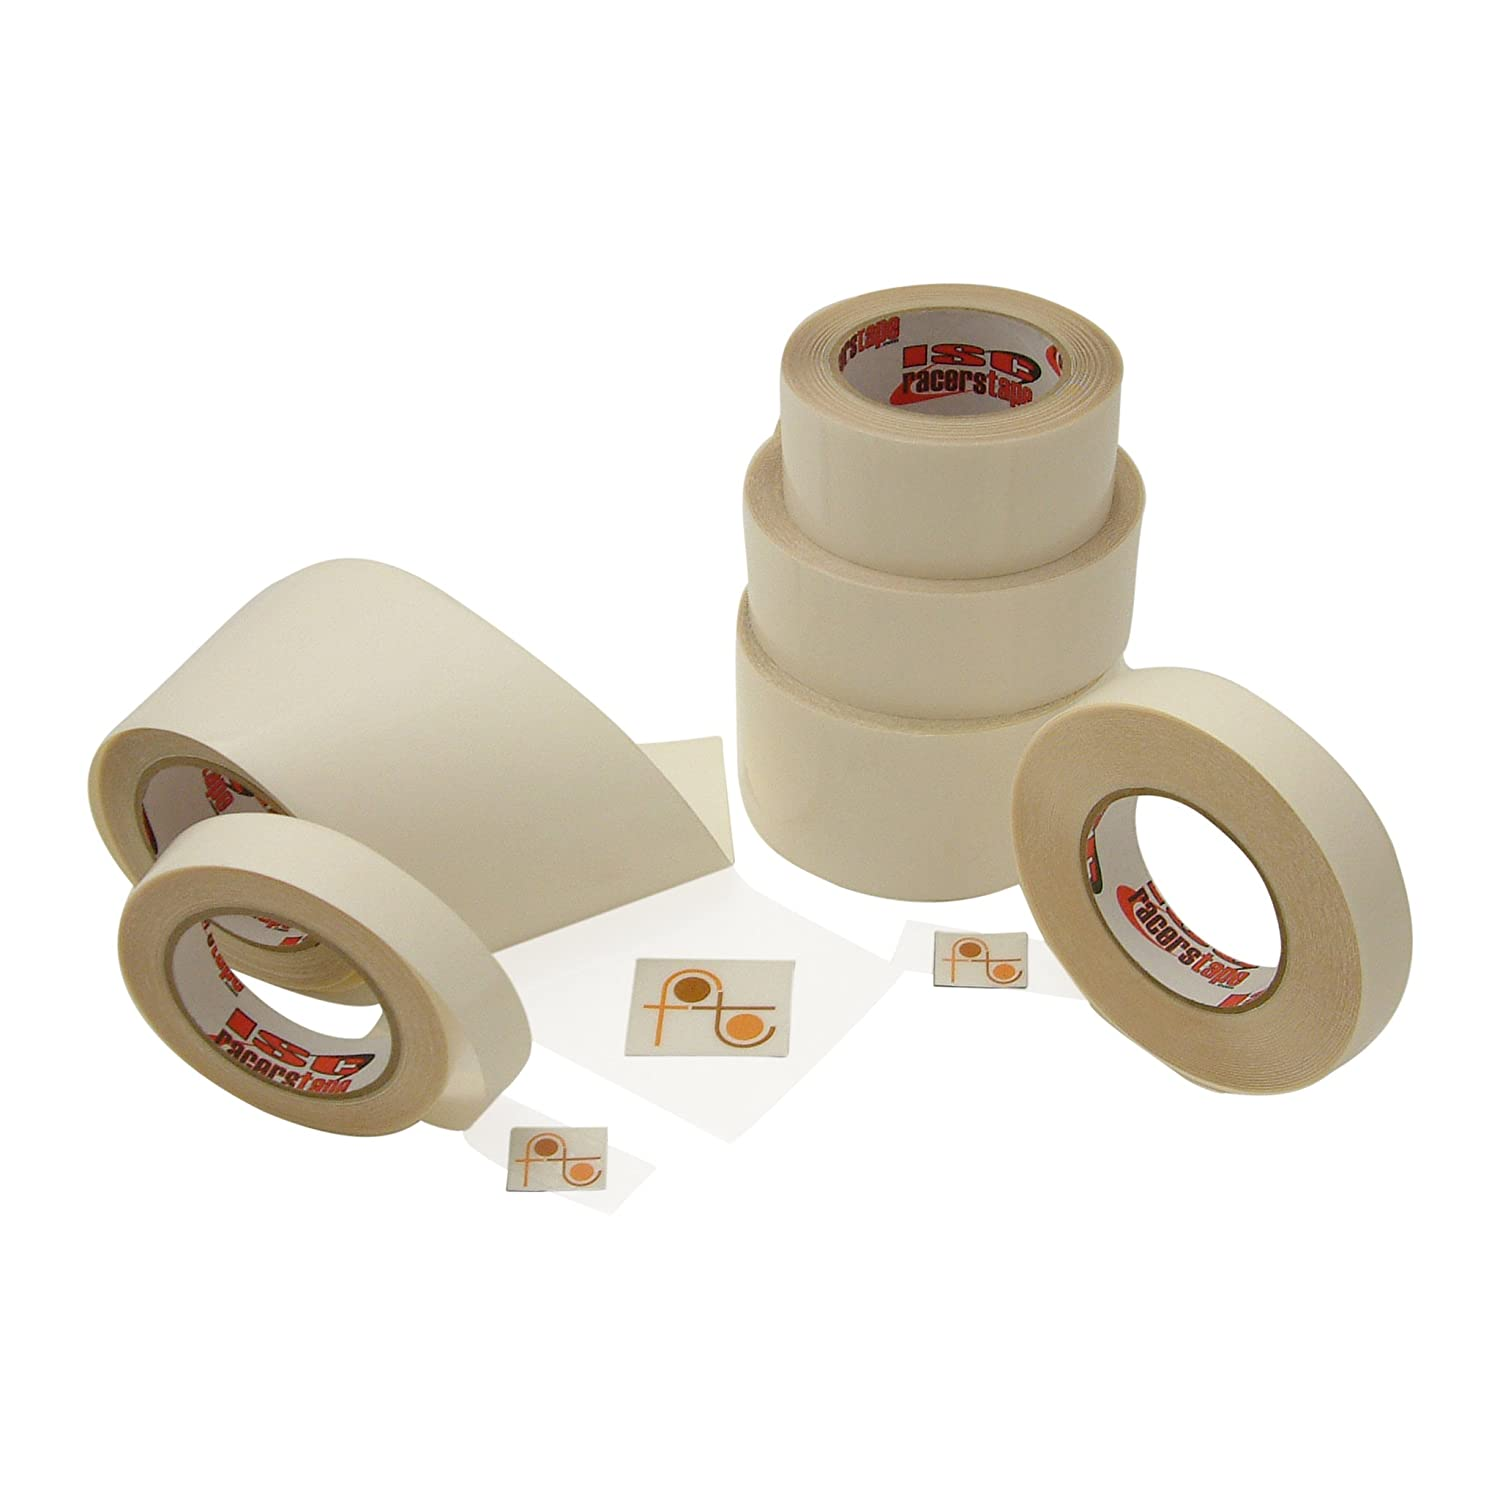 ISC Racers Tape HT1314 ISC Helicopter-OG-HD Surface Guard Tape: 1' x 30 ft, Transparent